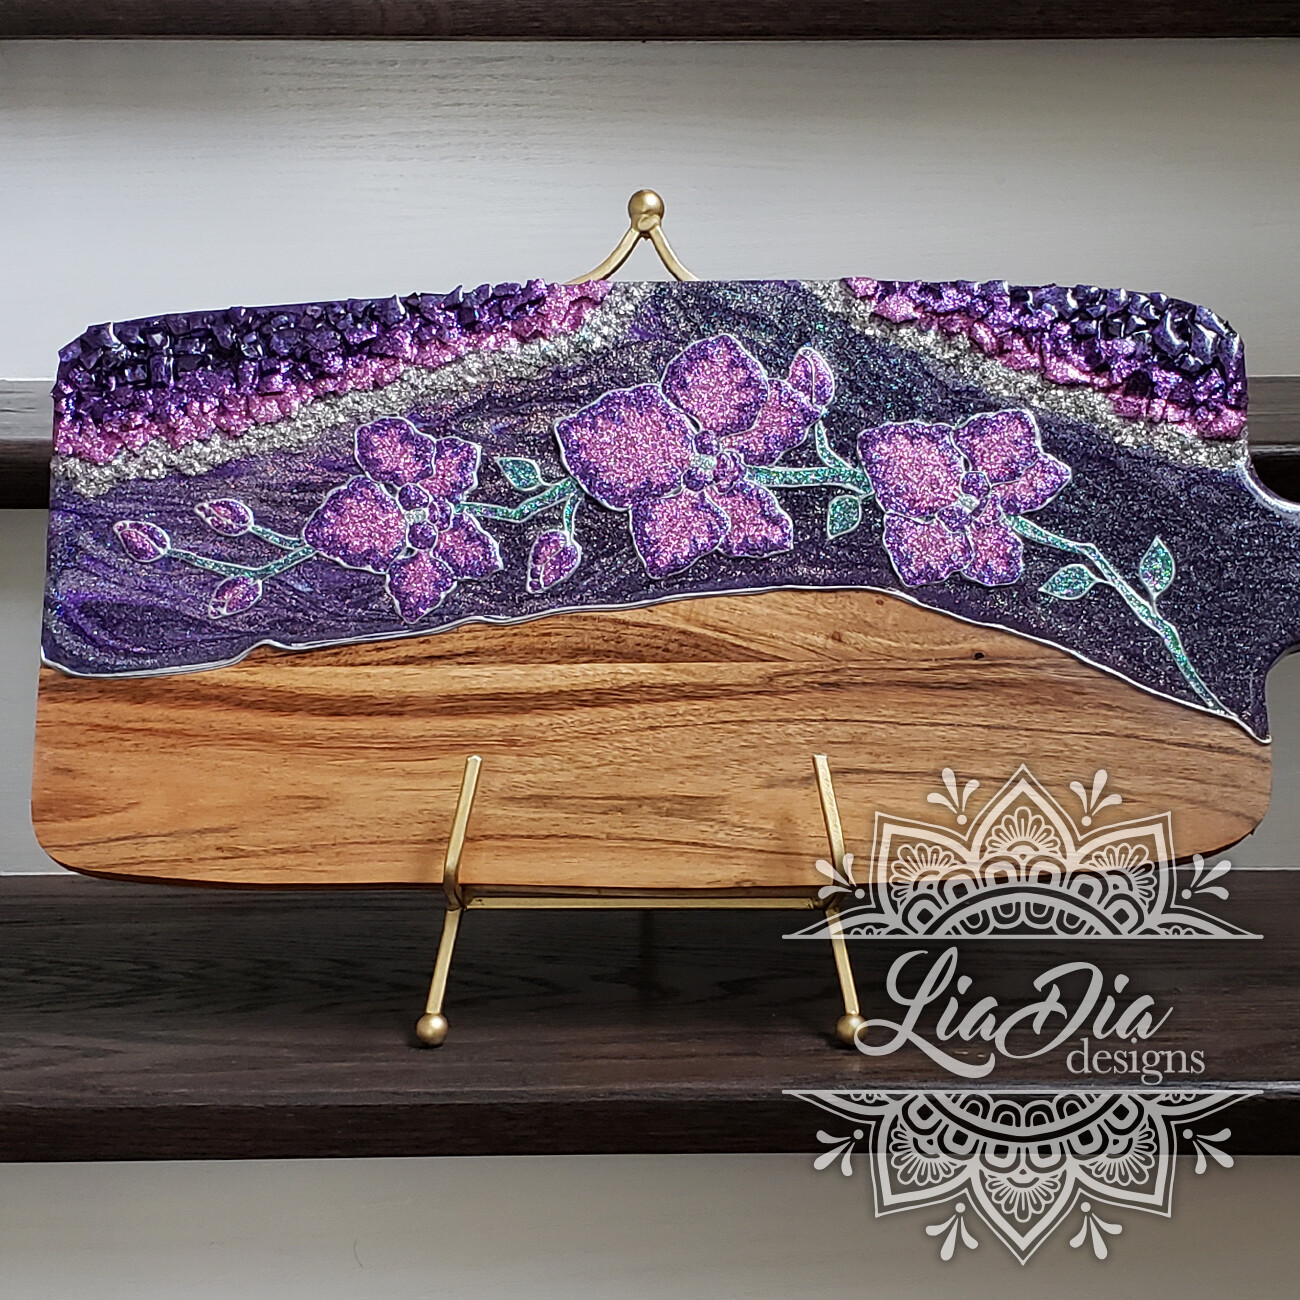 Violet Orchids Resin Geode Style Charcuterie Cheese Paddle Board